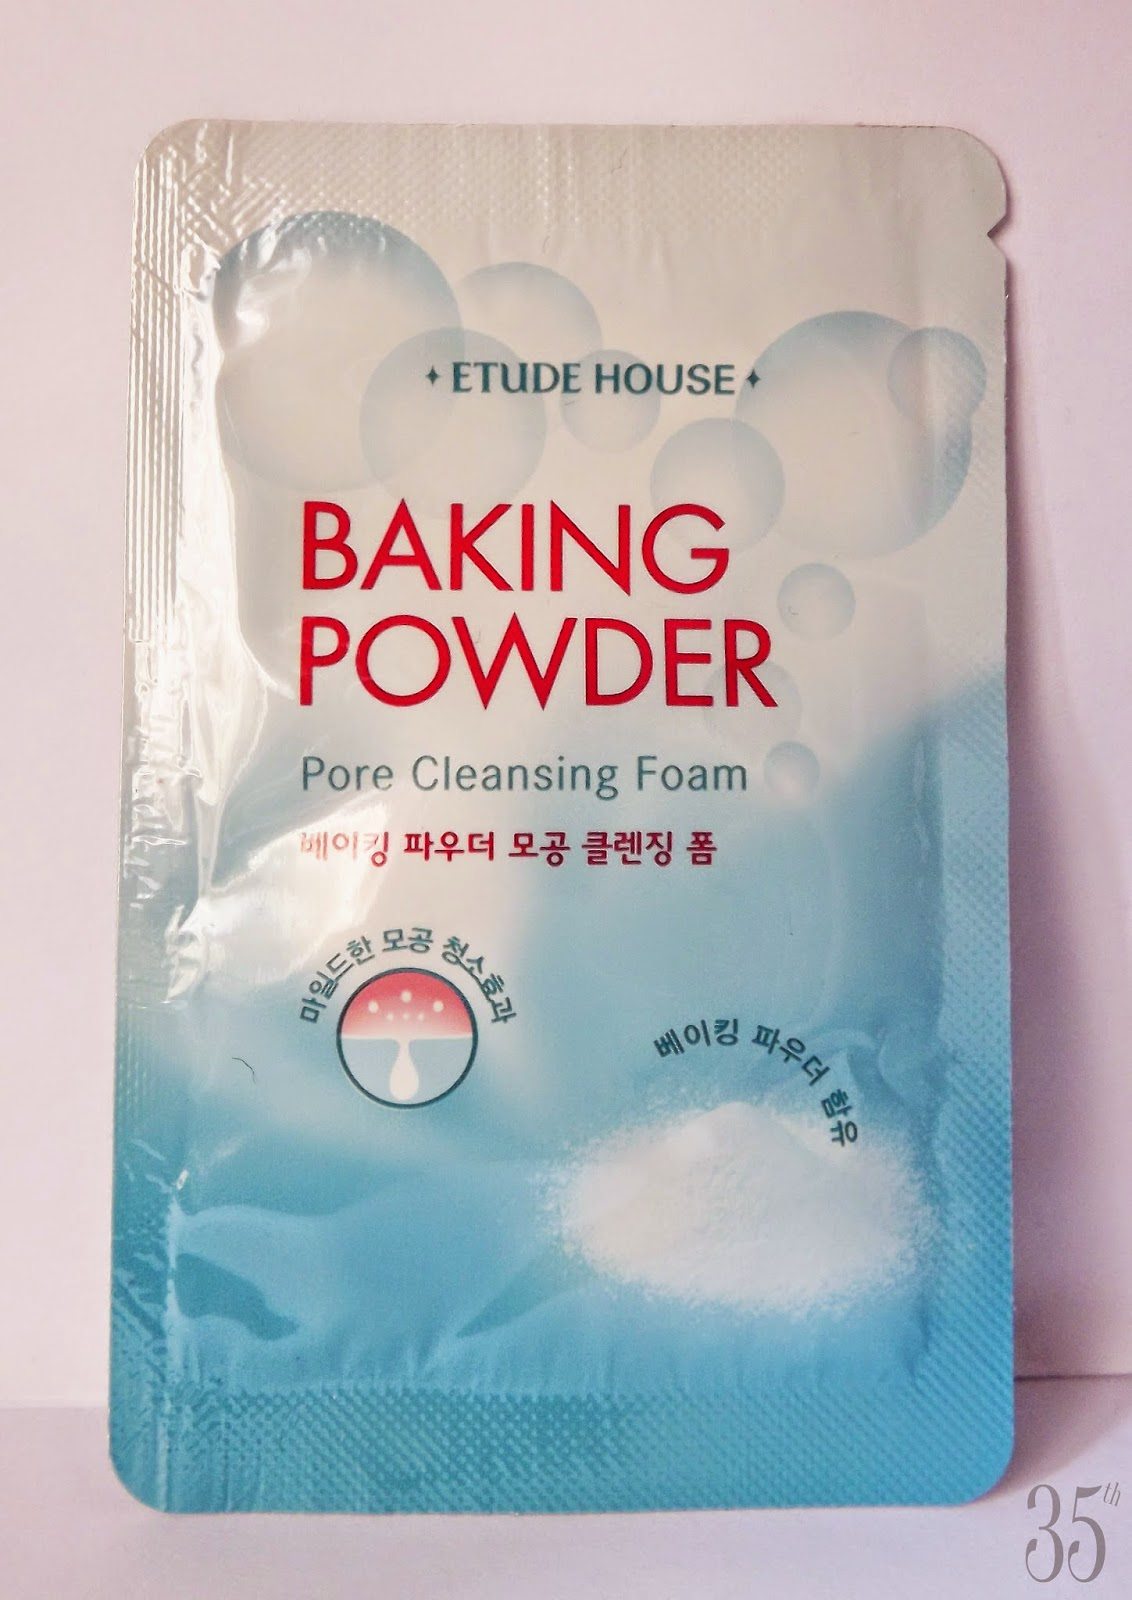 Etude House Baking Powder Pore Cleansing  Foam review